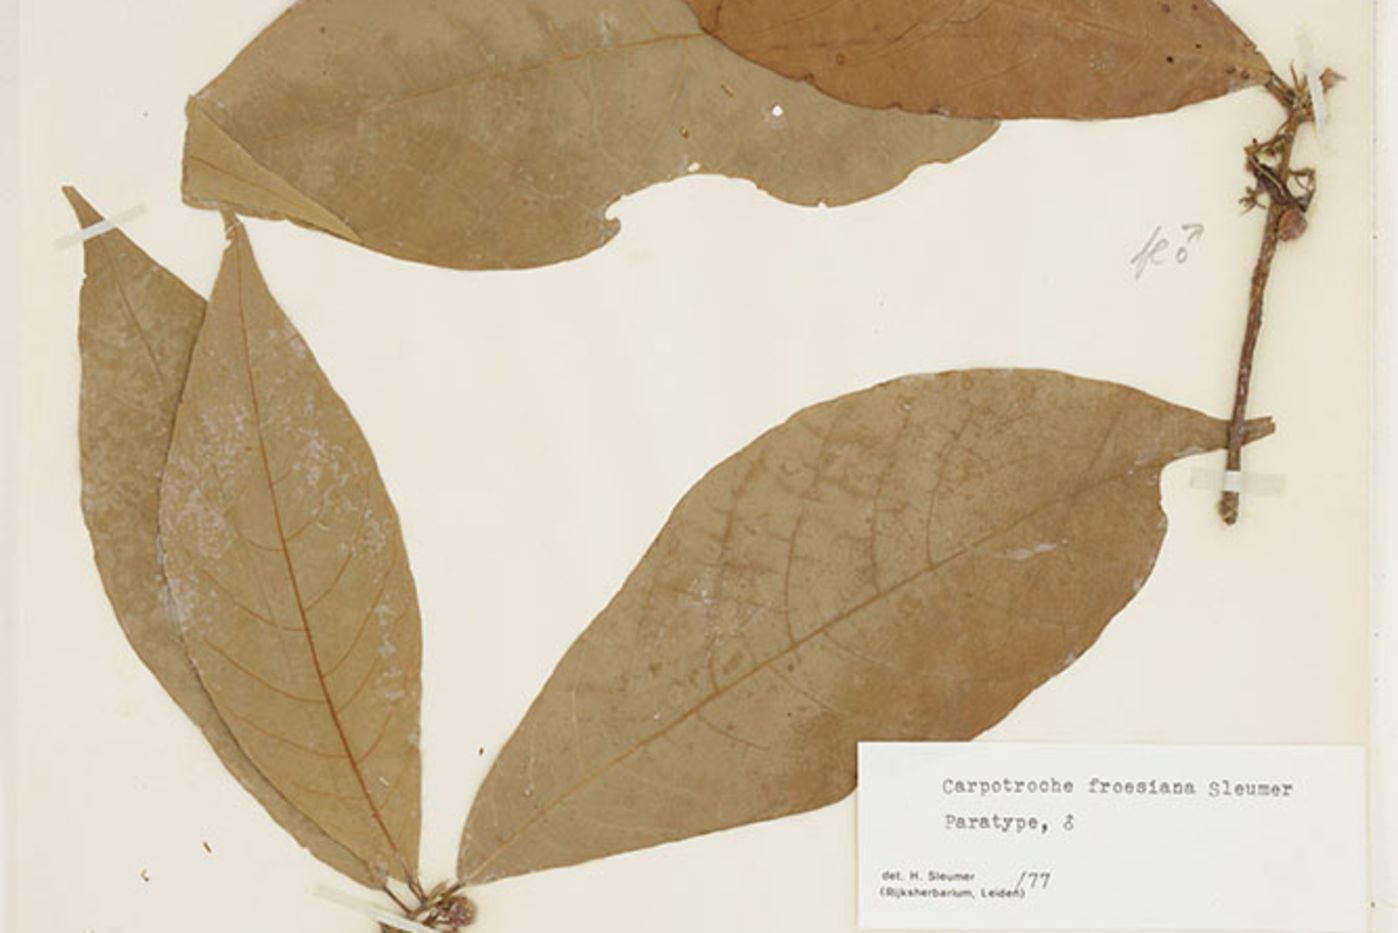 Dried plant specimen with large leaves, fixed to a piece of paper